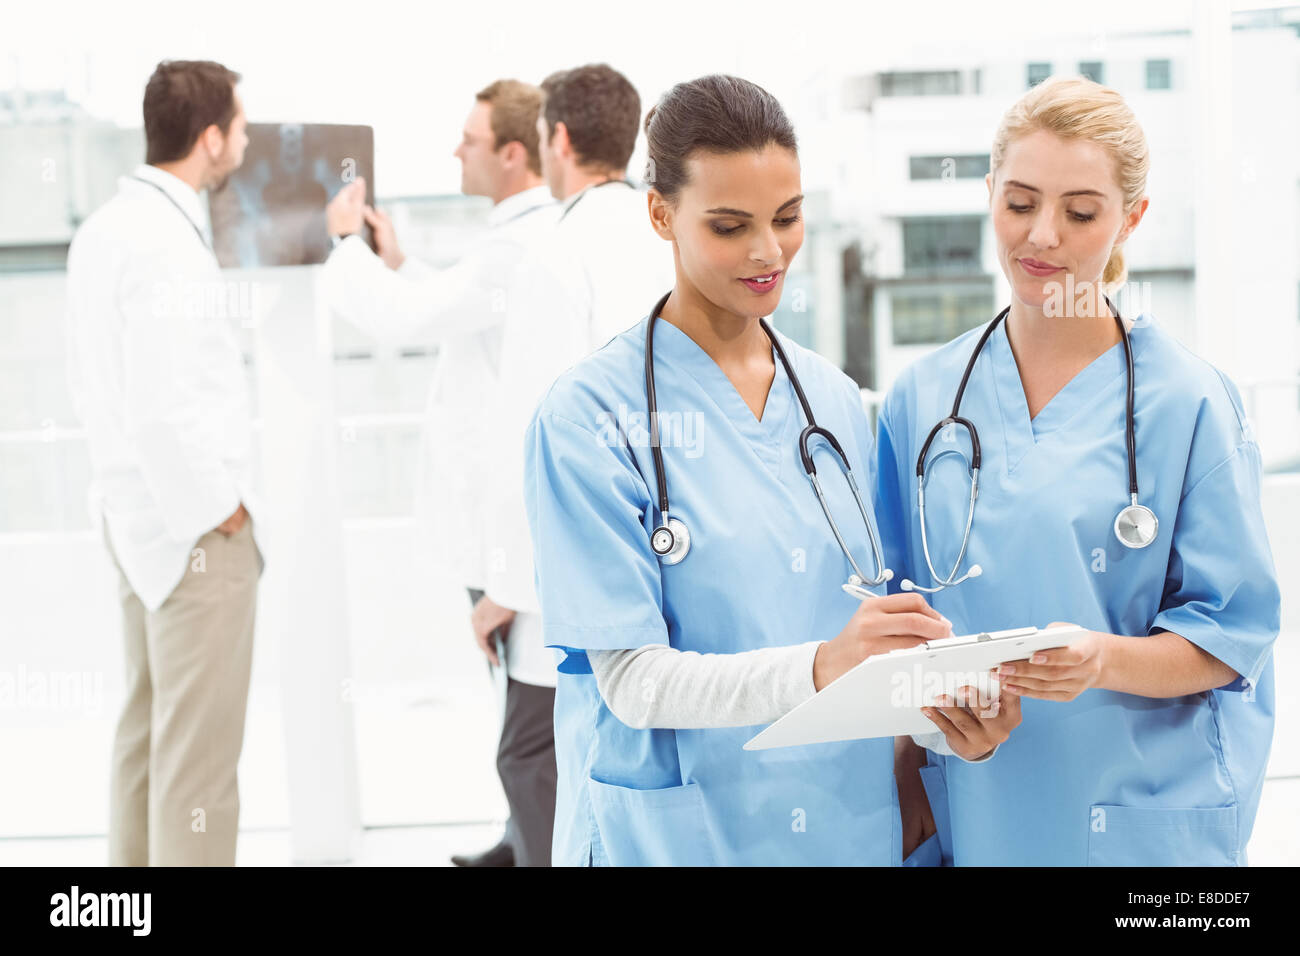 Two female surgeons looking at reports - Stock Image